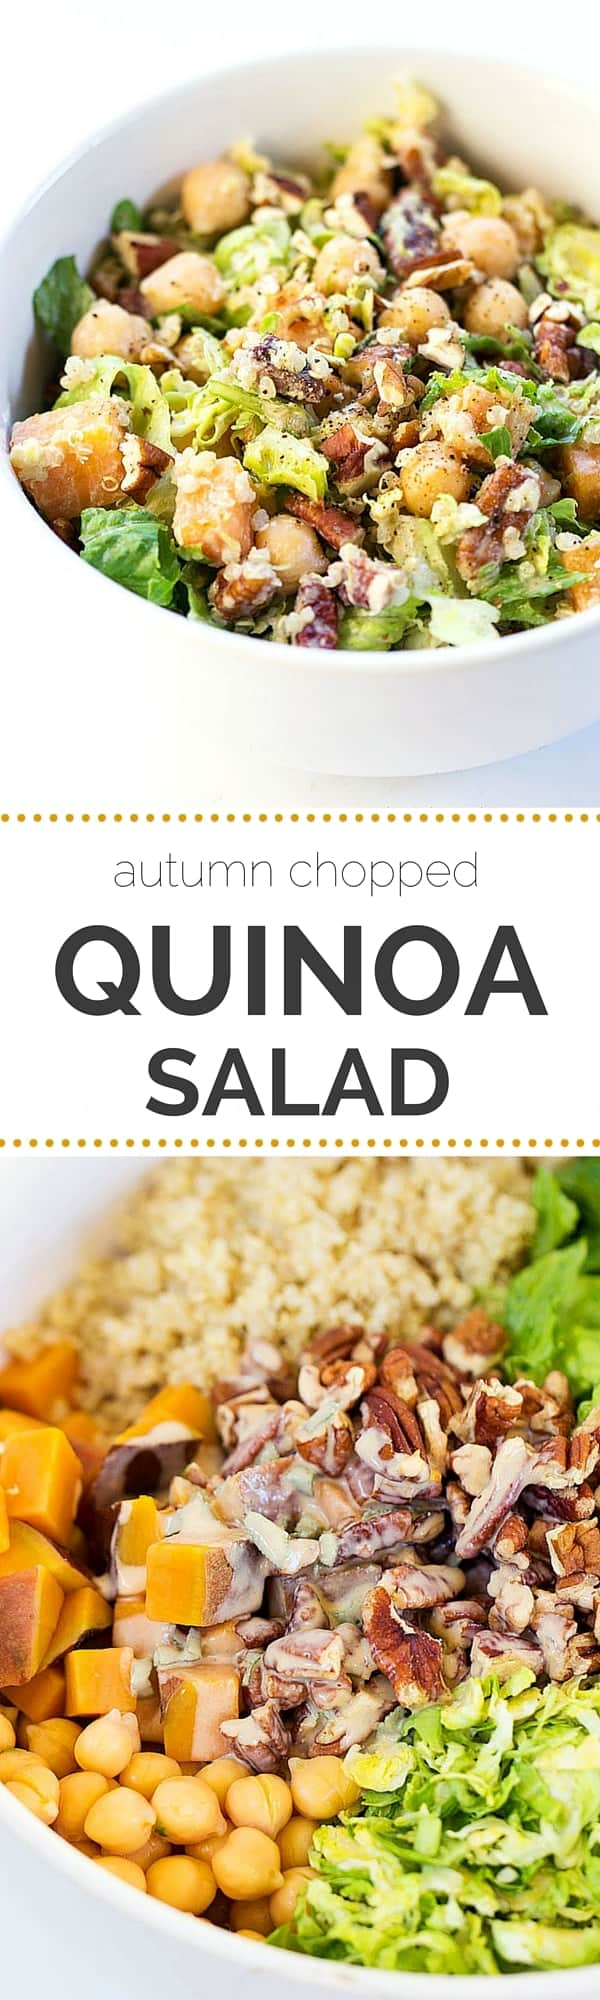 The perfect fall salad >> Autumn Chopped Quinoa Salad with an Apple Cider + Tahini-Sage Dressing